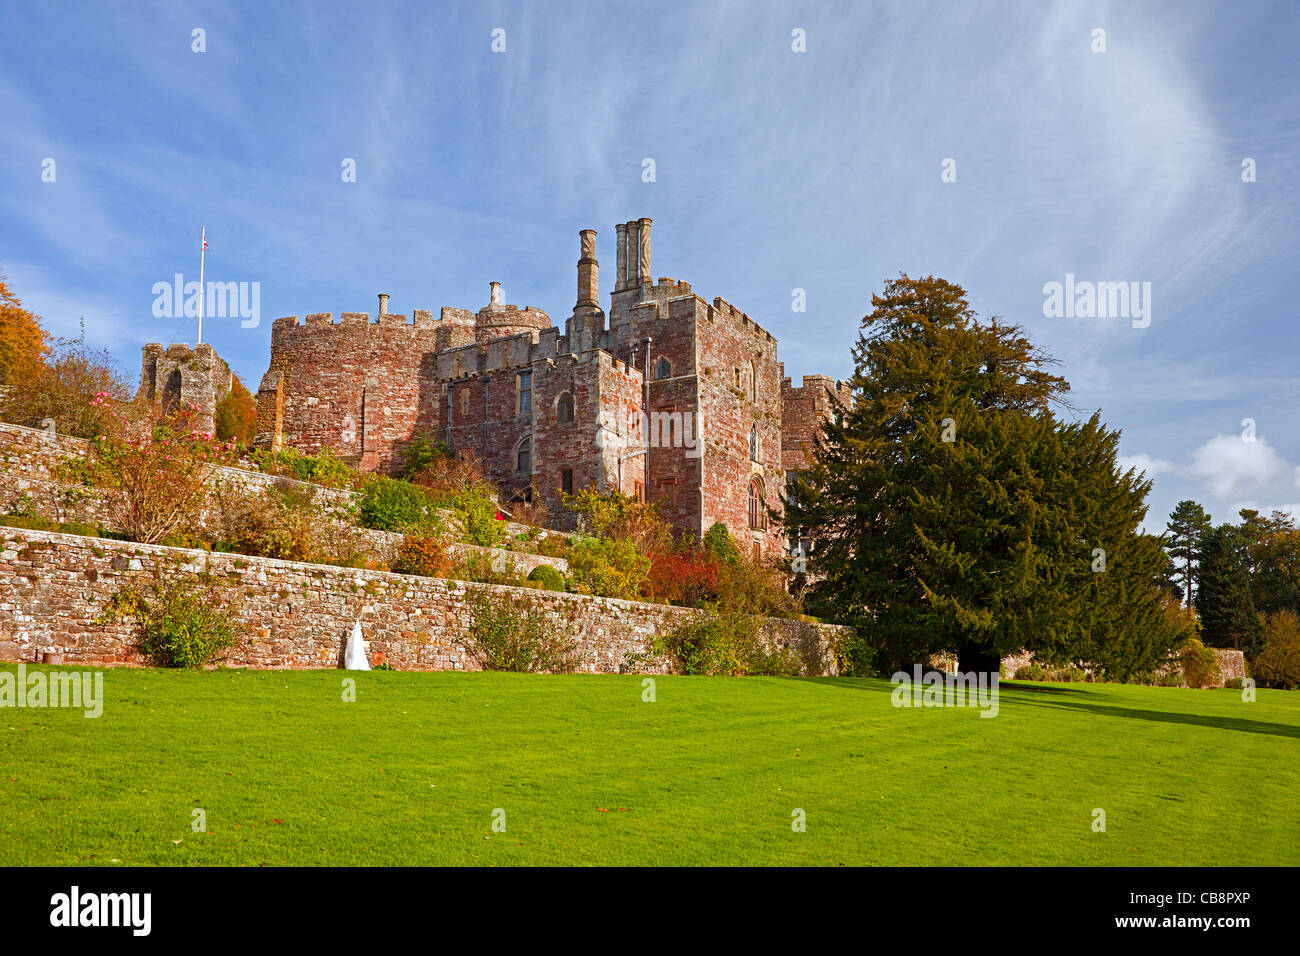 The terraced gardens at Berkeley Castle, Gloucestershire, England, UK - Stock Image